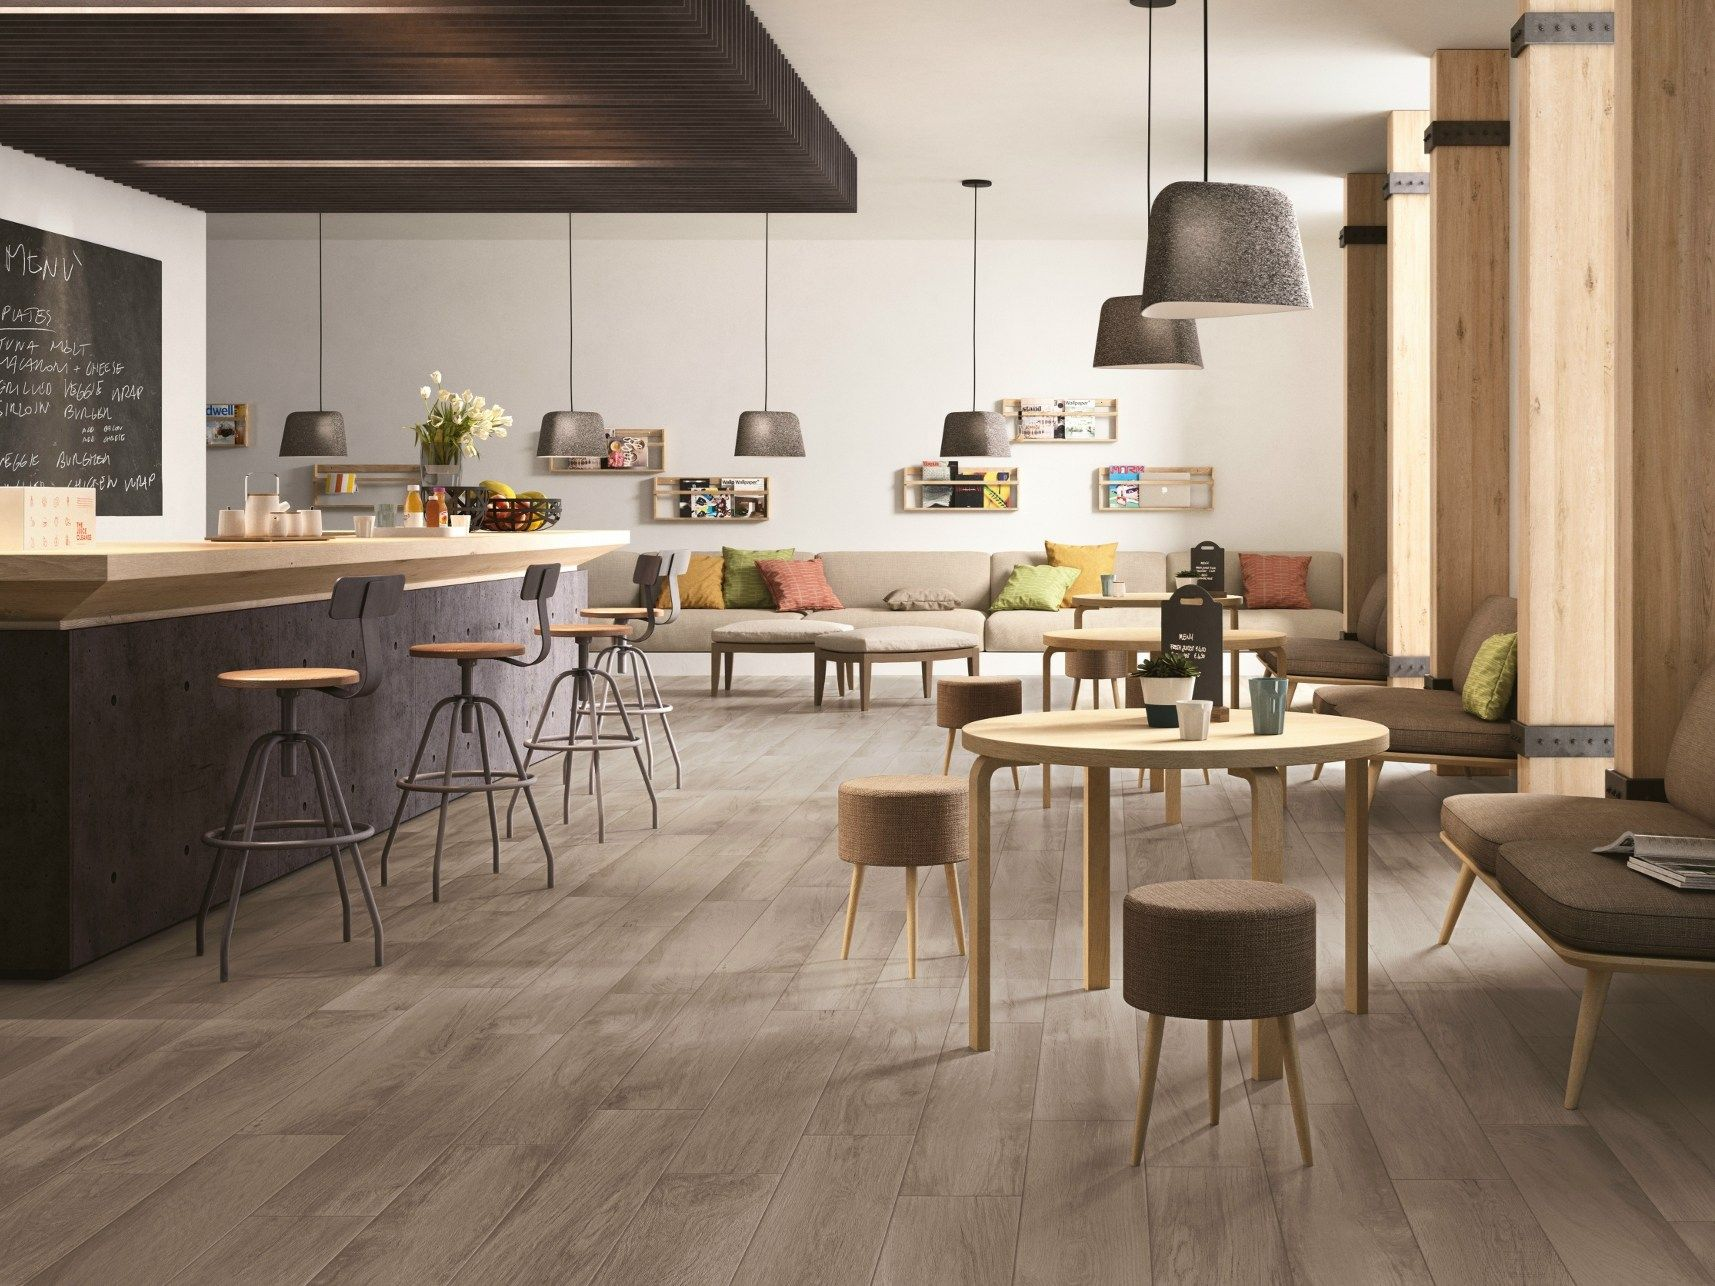 Porcelain Stoneware Flooring Woodplace By Ragno Marazzi Group - Piastrelle Ragno Harmony